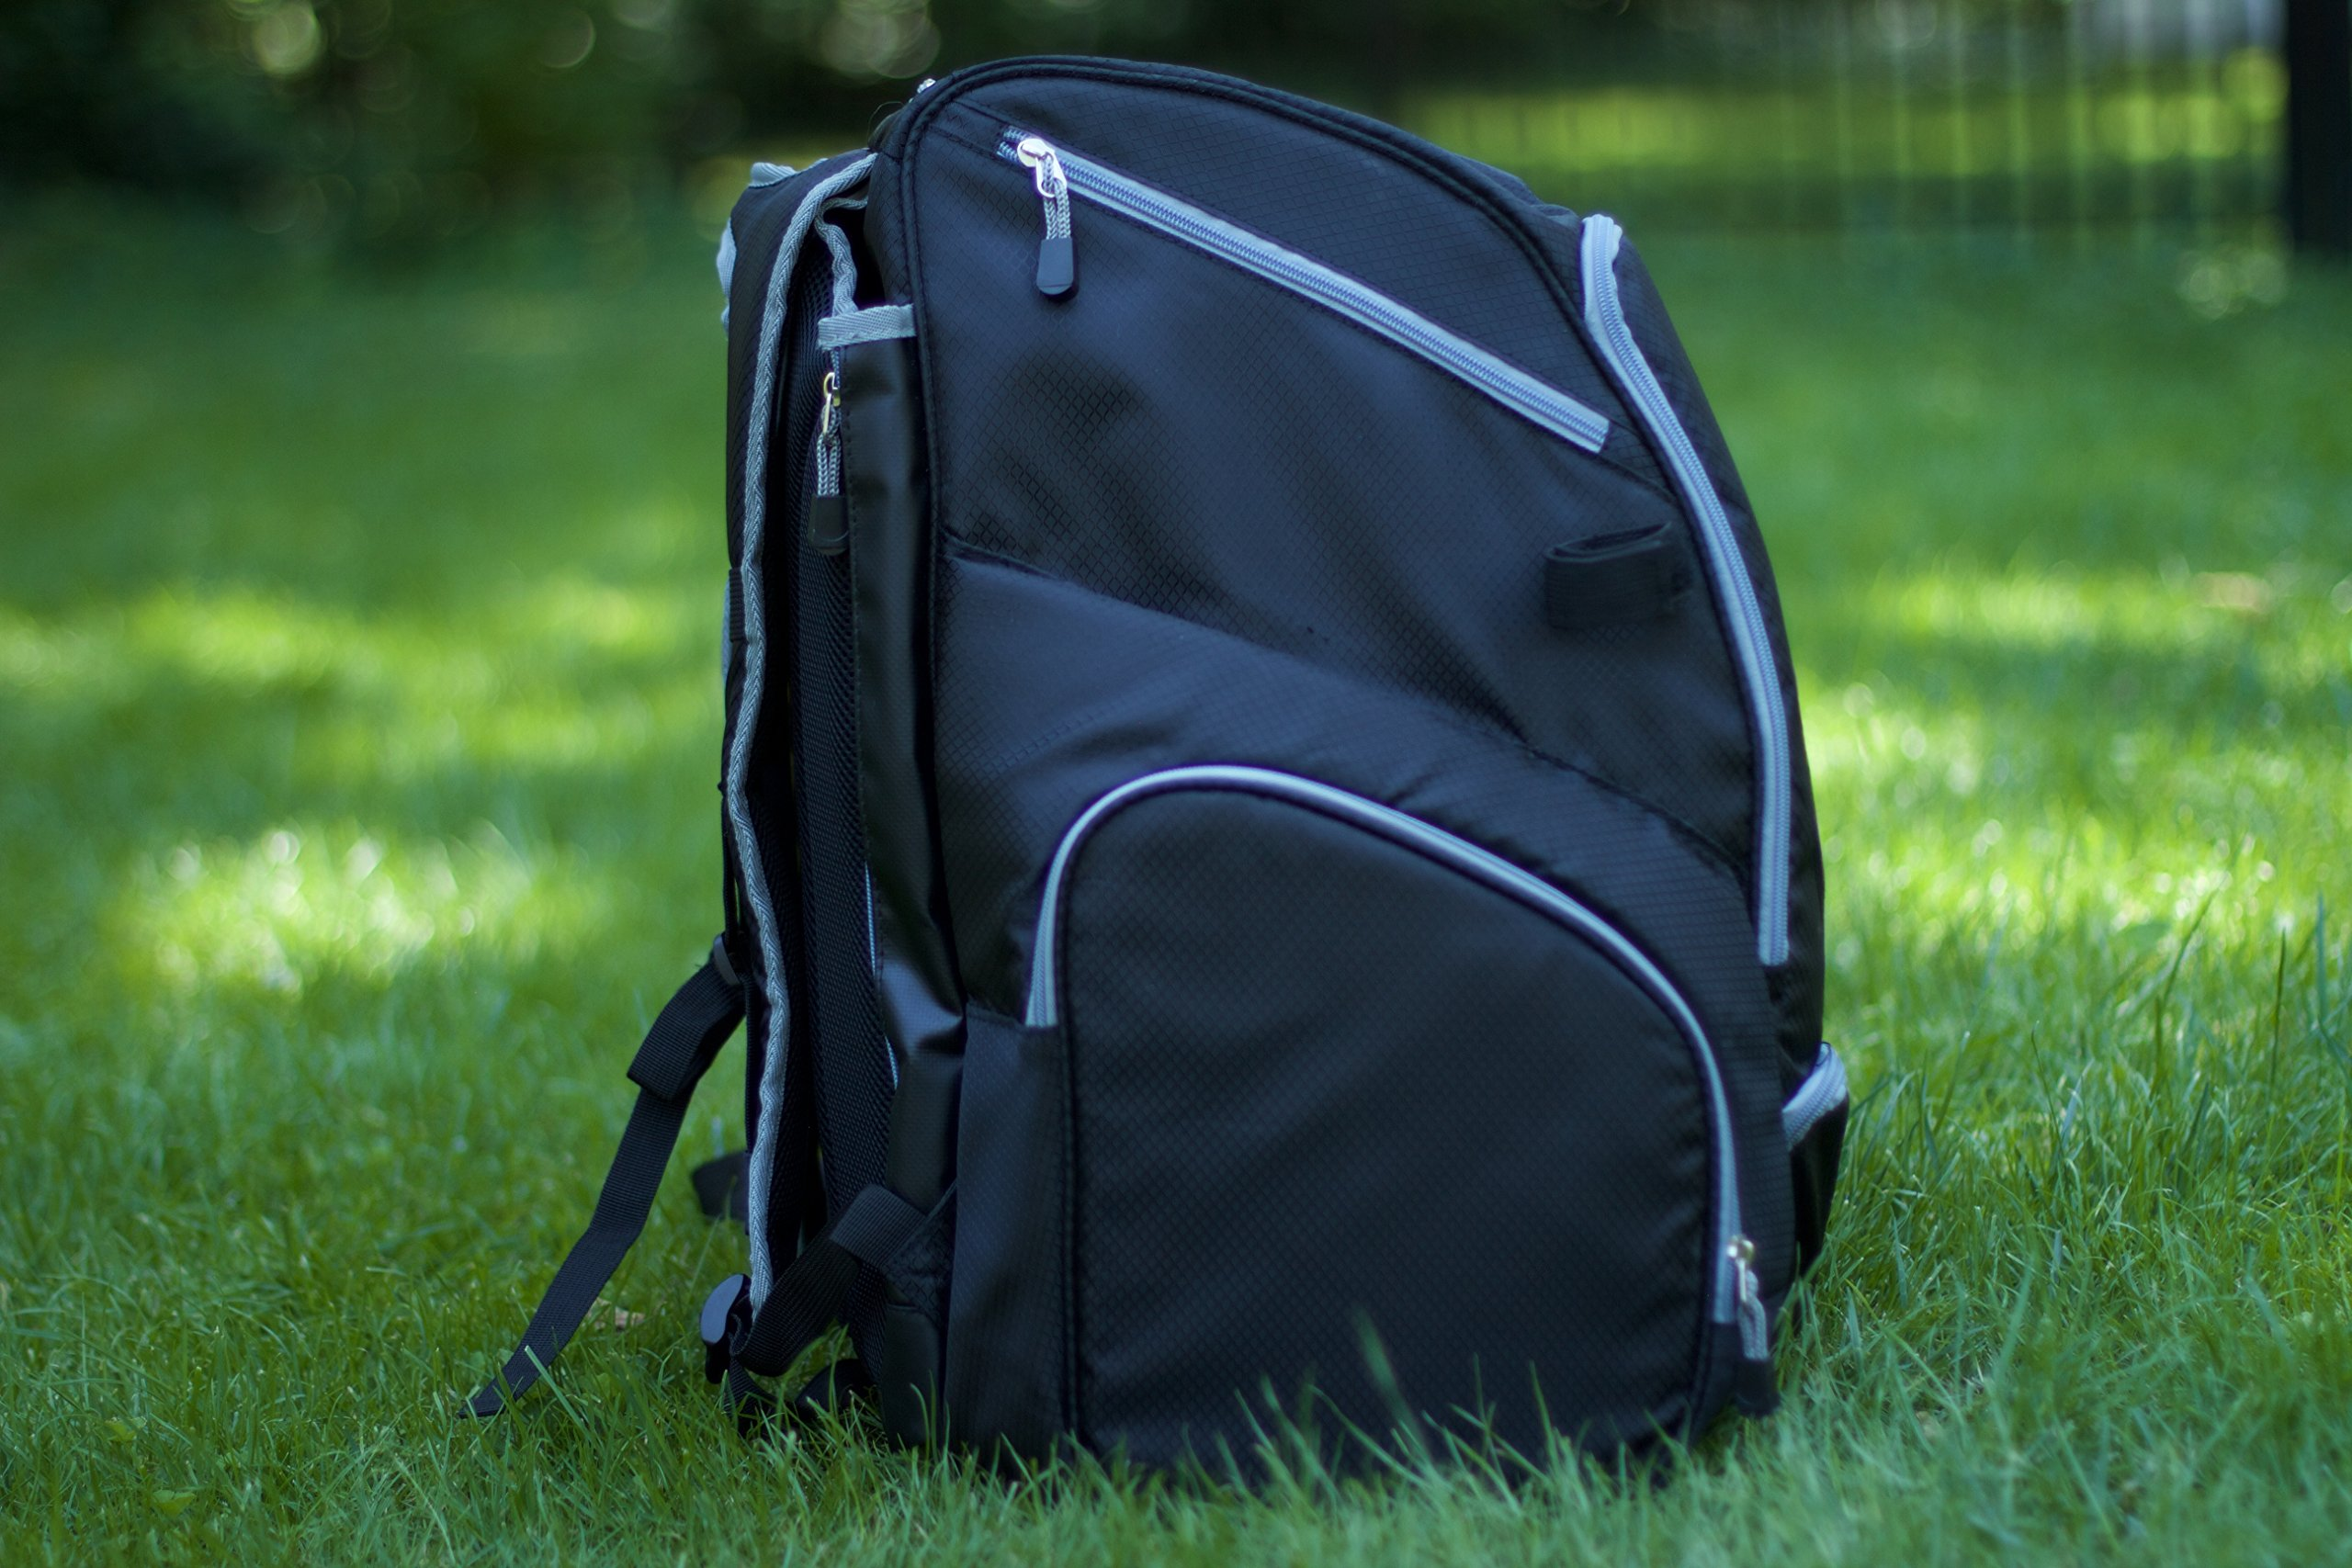 Throwback Gametime Pack XL - Large Lacrosse Backpack & Field Hockey Bag With Cooler - Perfect For Multi-Sport Athletes - Includes Racquet Holder For Tennis, Racquetball + Separate Shoe Compartment by Throwback Sports (Image #8)